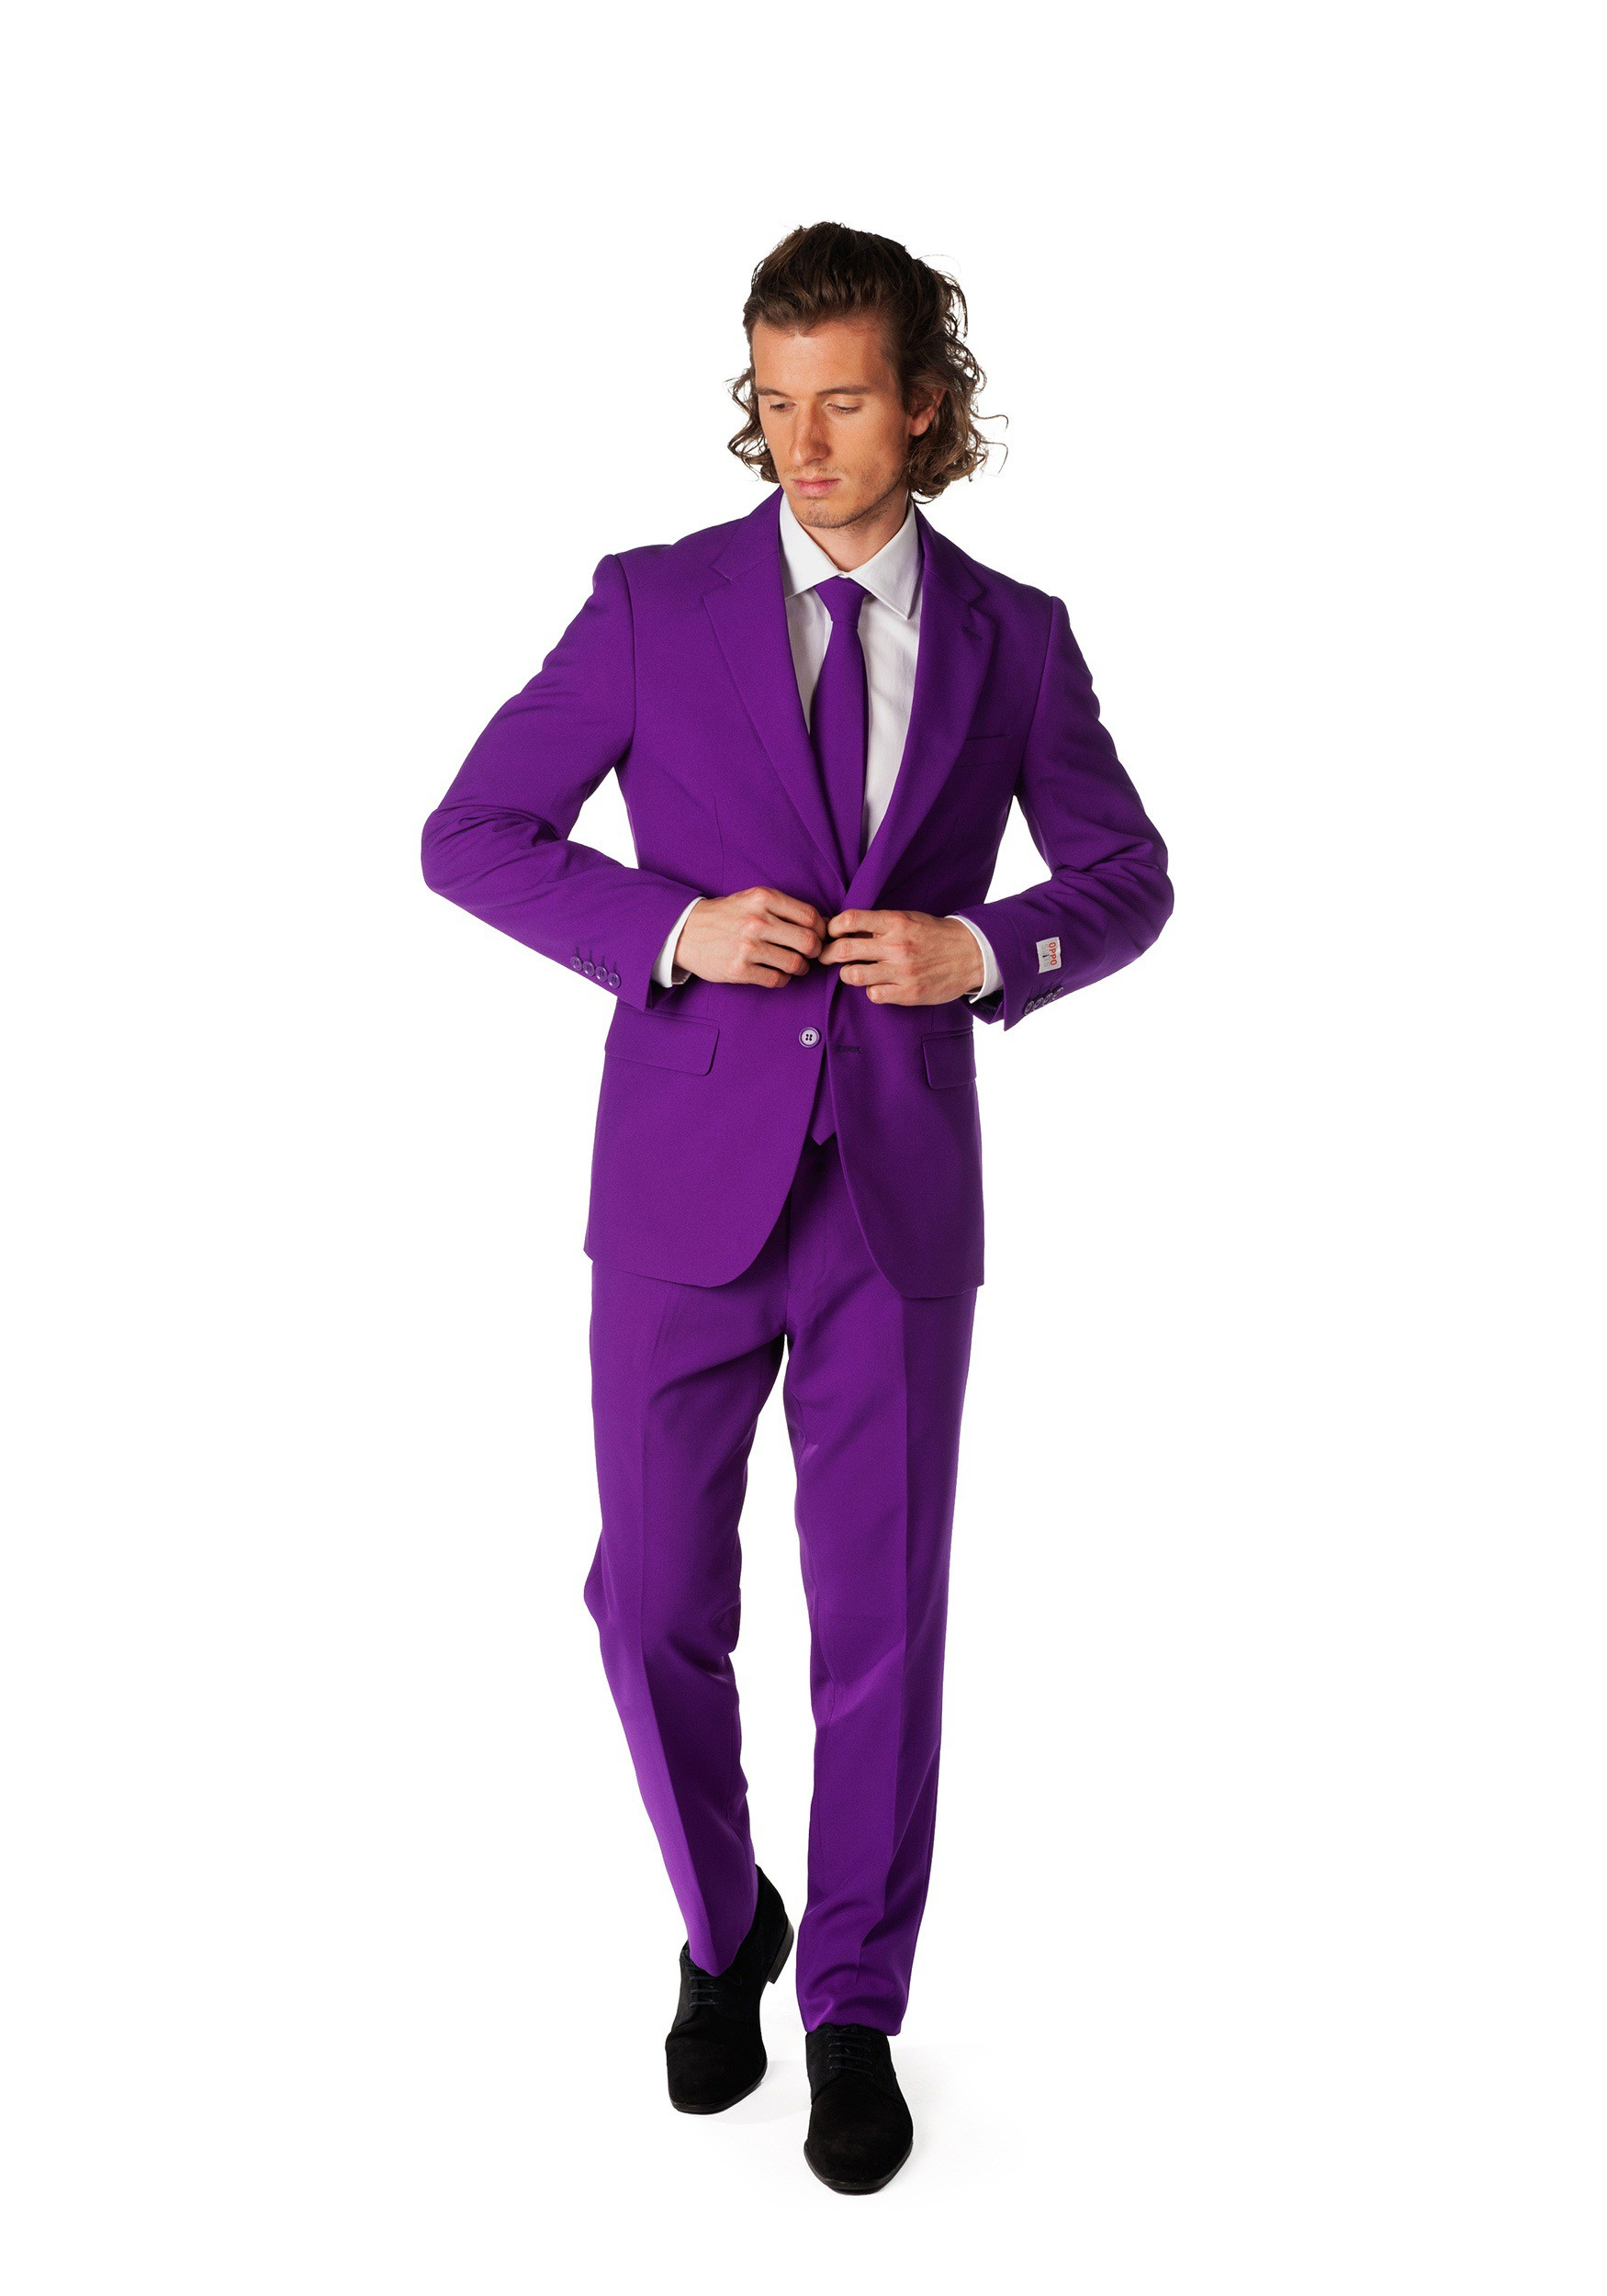 Mens Opposuits Purple Suit moreover Heat Up Winter C ing With Tips From Northern Tiers Okpik Training also Cool Pants For Boys QuECmYCR51NlJHaG27KsJRNNonlUb44O2xJaNvJka0w in addition Wonderland Hi Top Bikini additionally Adidas Clothing For Boys. on jackets for teenage boys